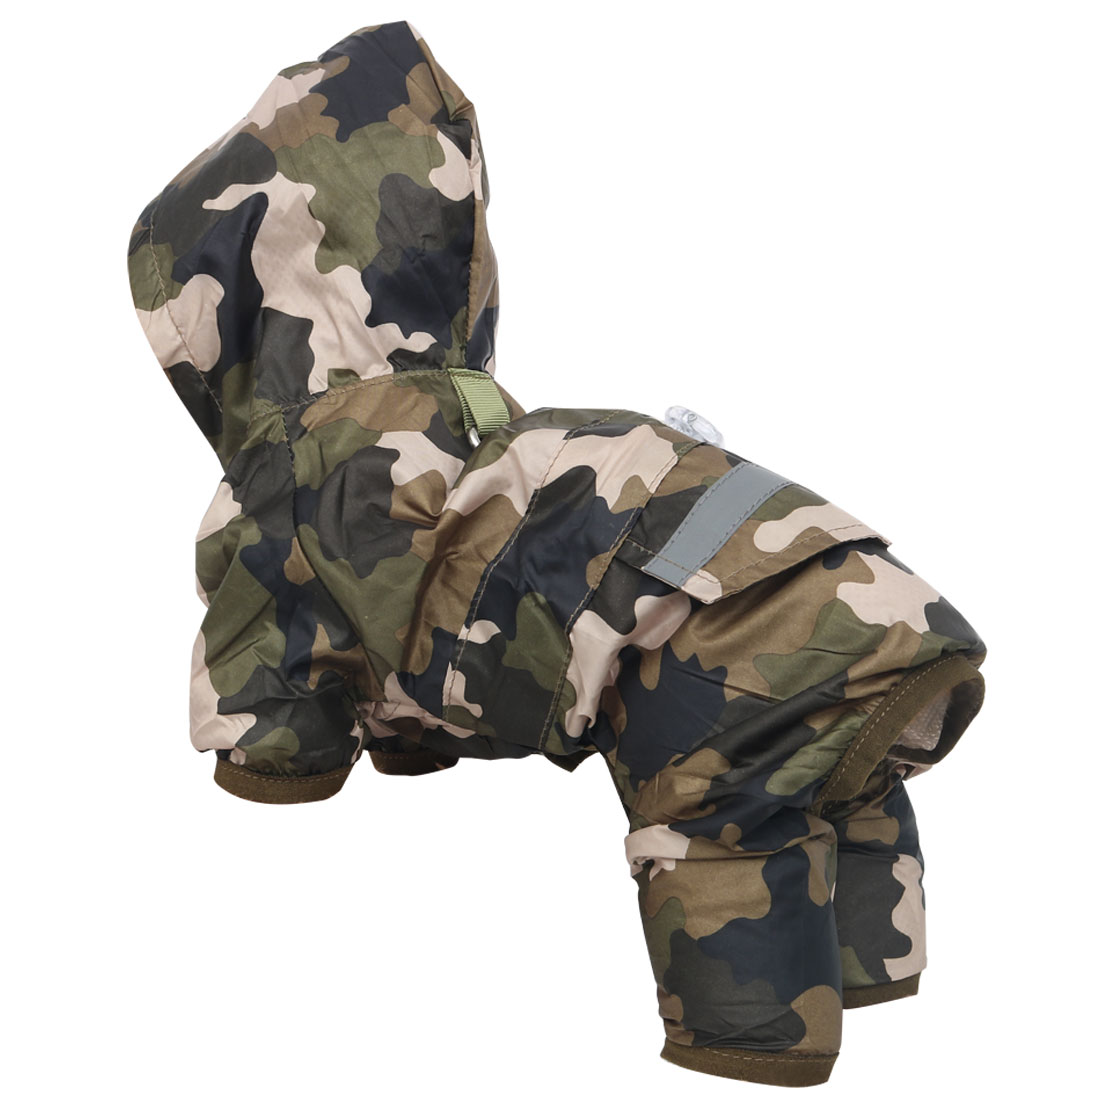 Pet Dog Raincoat Jacket Clothes Polyester Water-resistant Rainwear Camo Color S